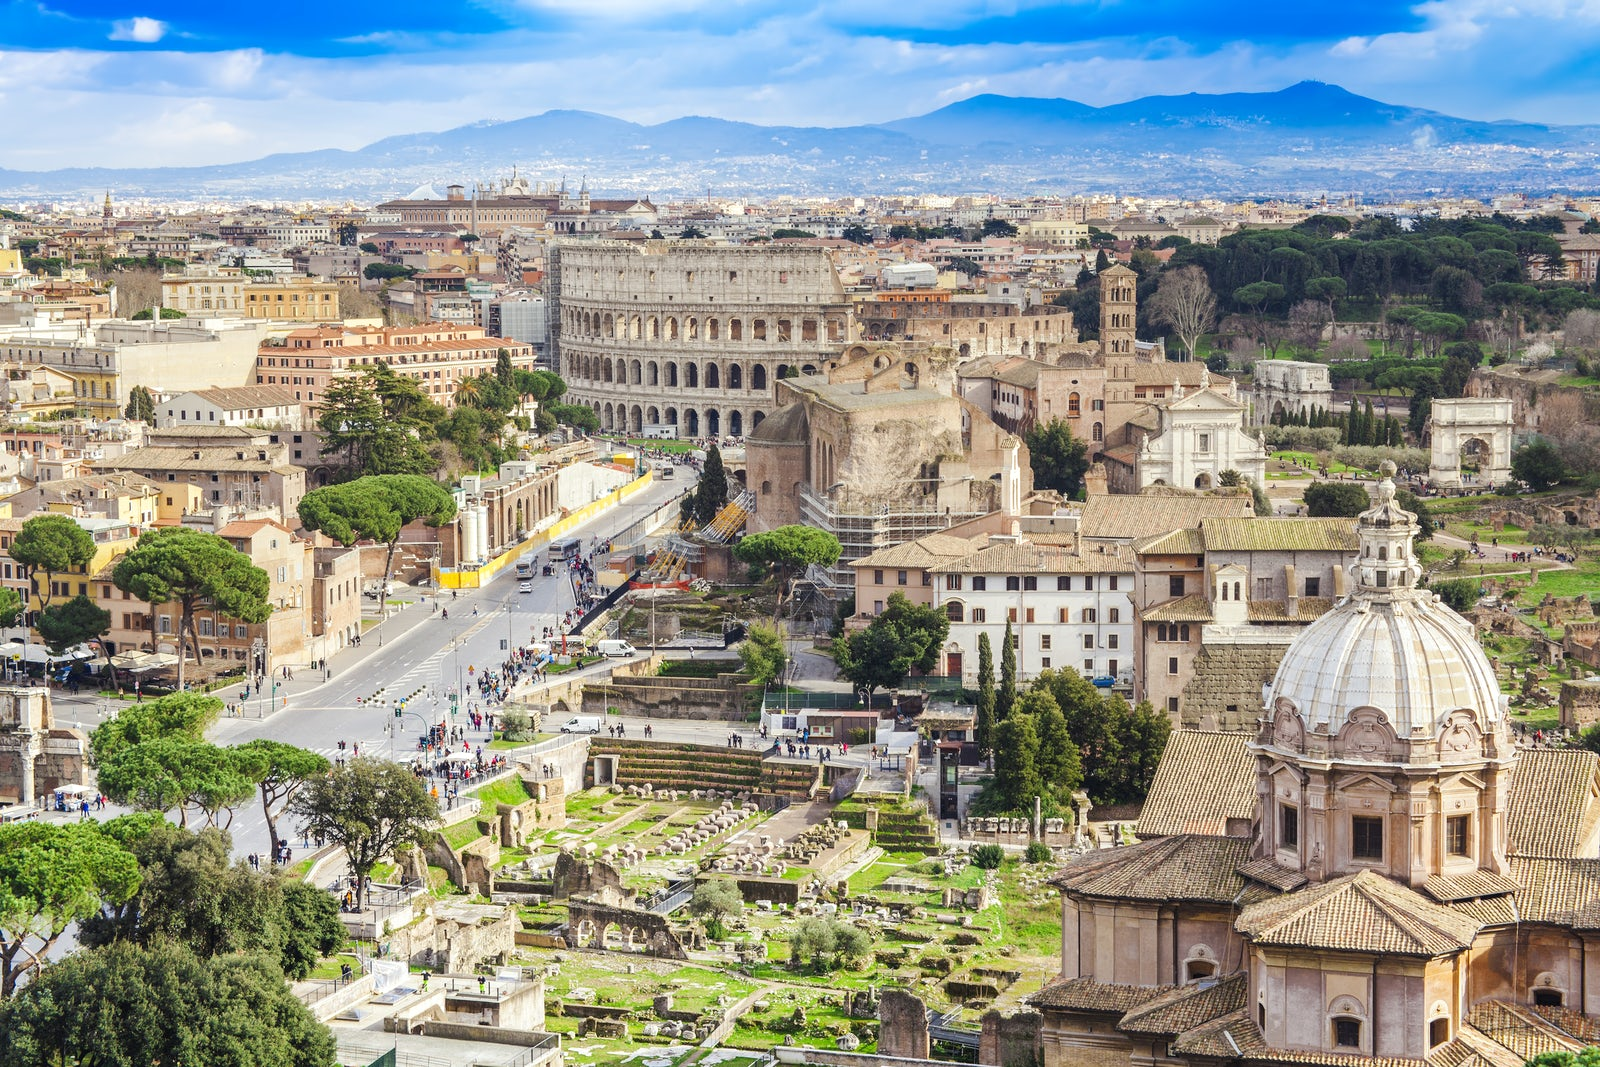 !i18n:es:data.cities:rome.picture.caption